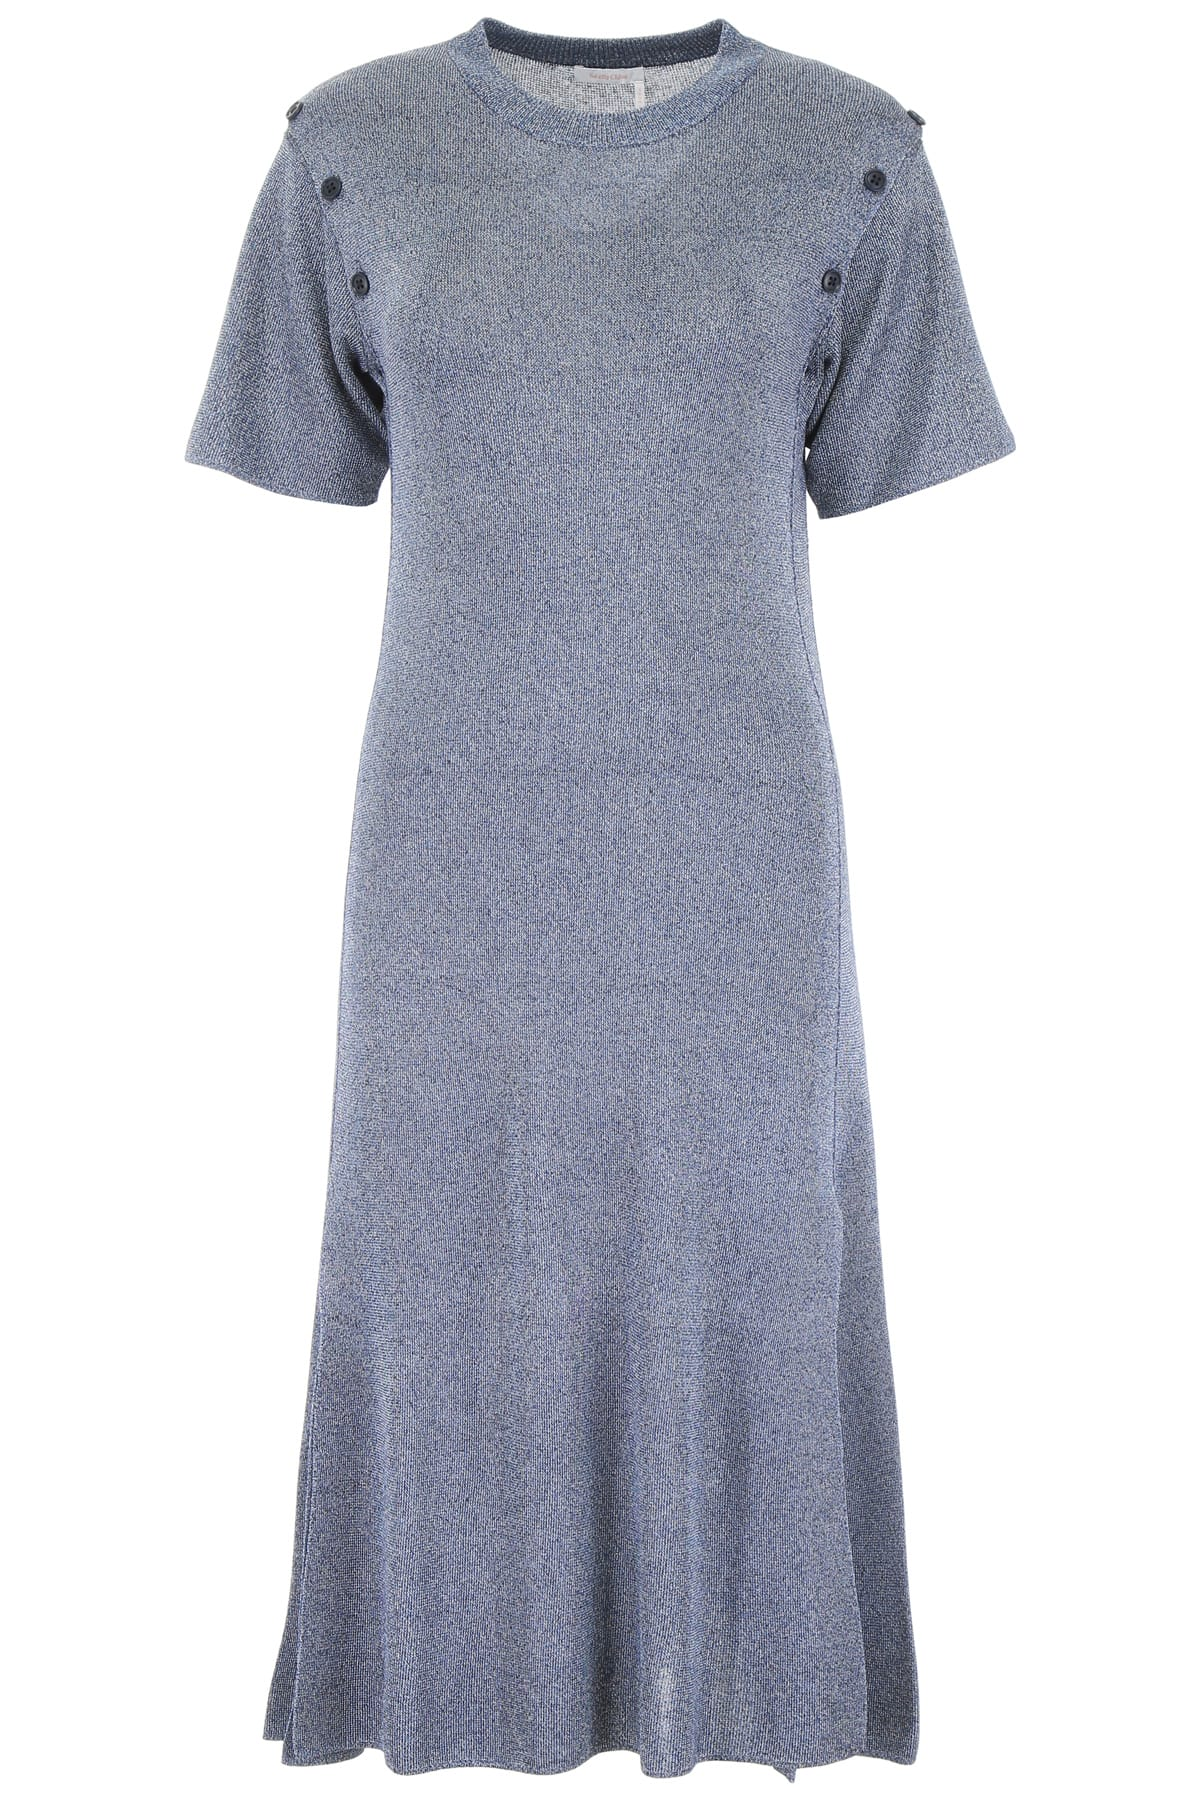 Buy See by Chloé Knit Dress online, shop See by Chloé with free shipping